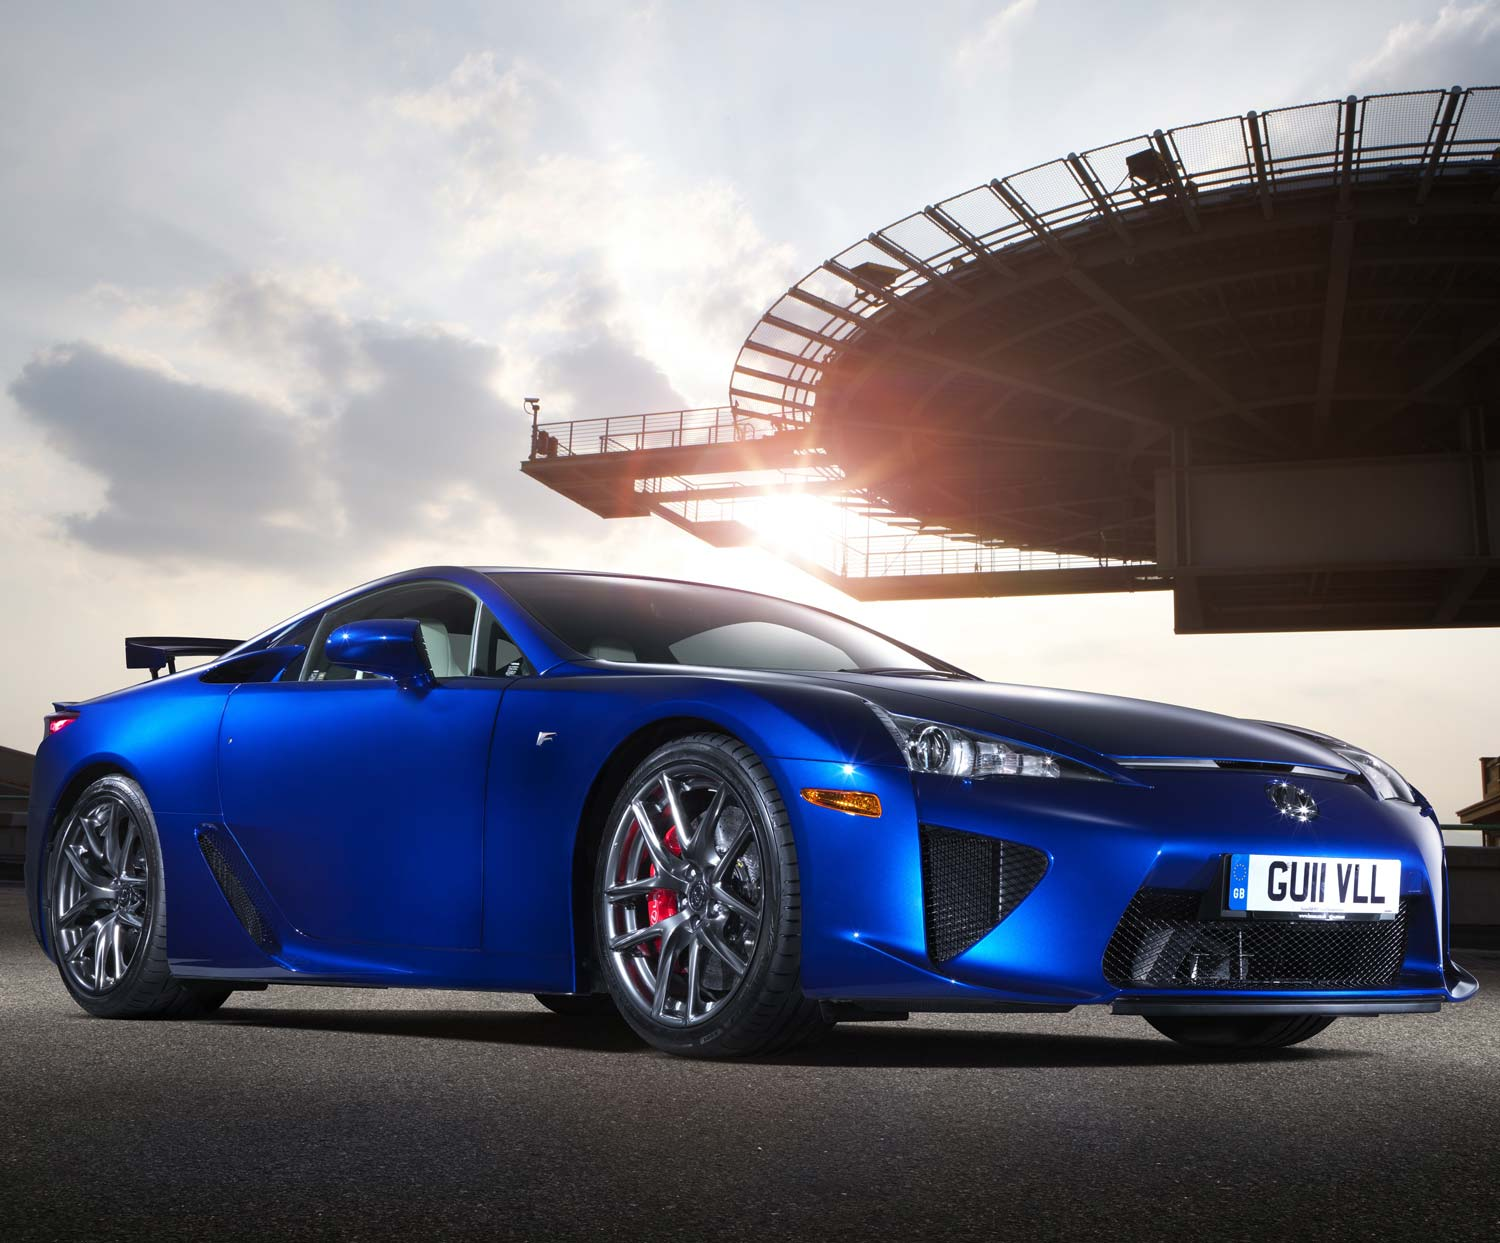 The Lexus RC F at the Goodwood Festival of Speed